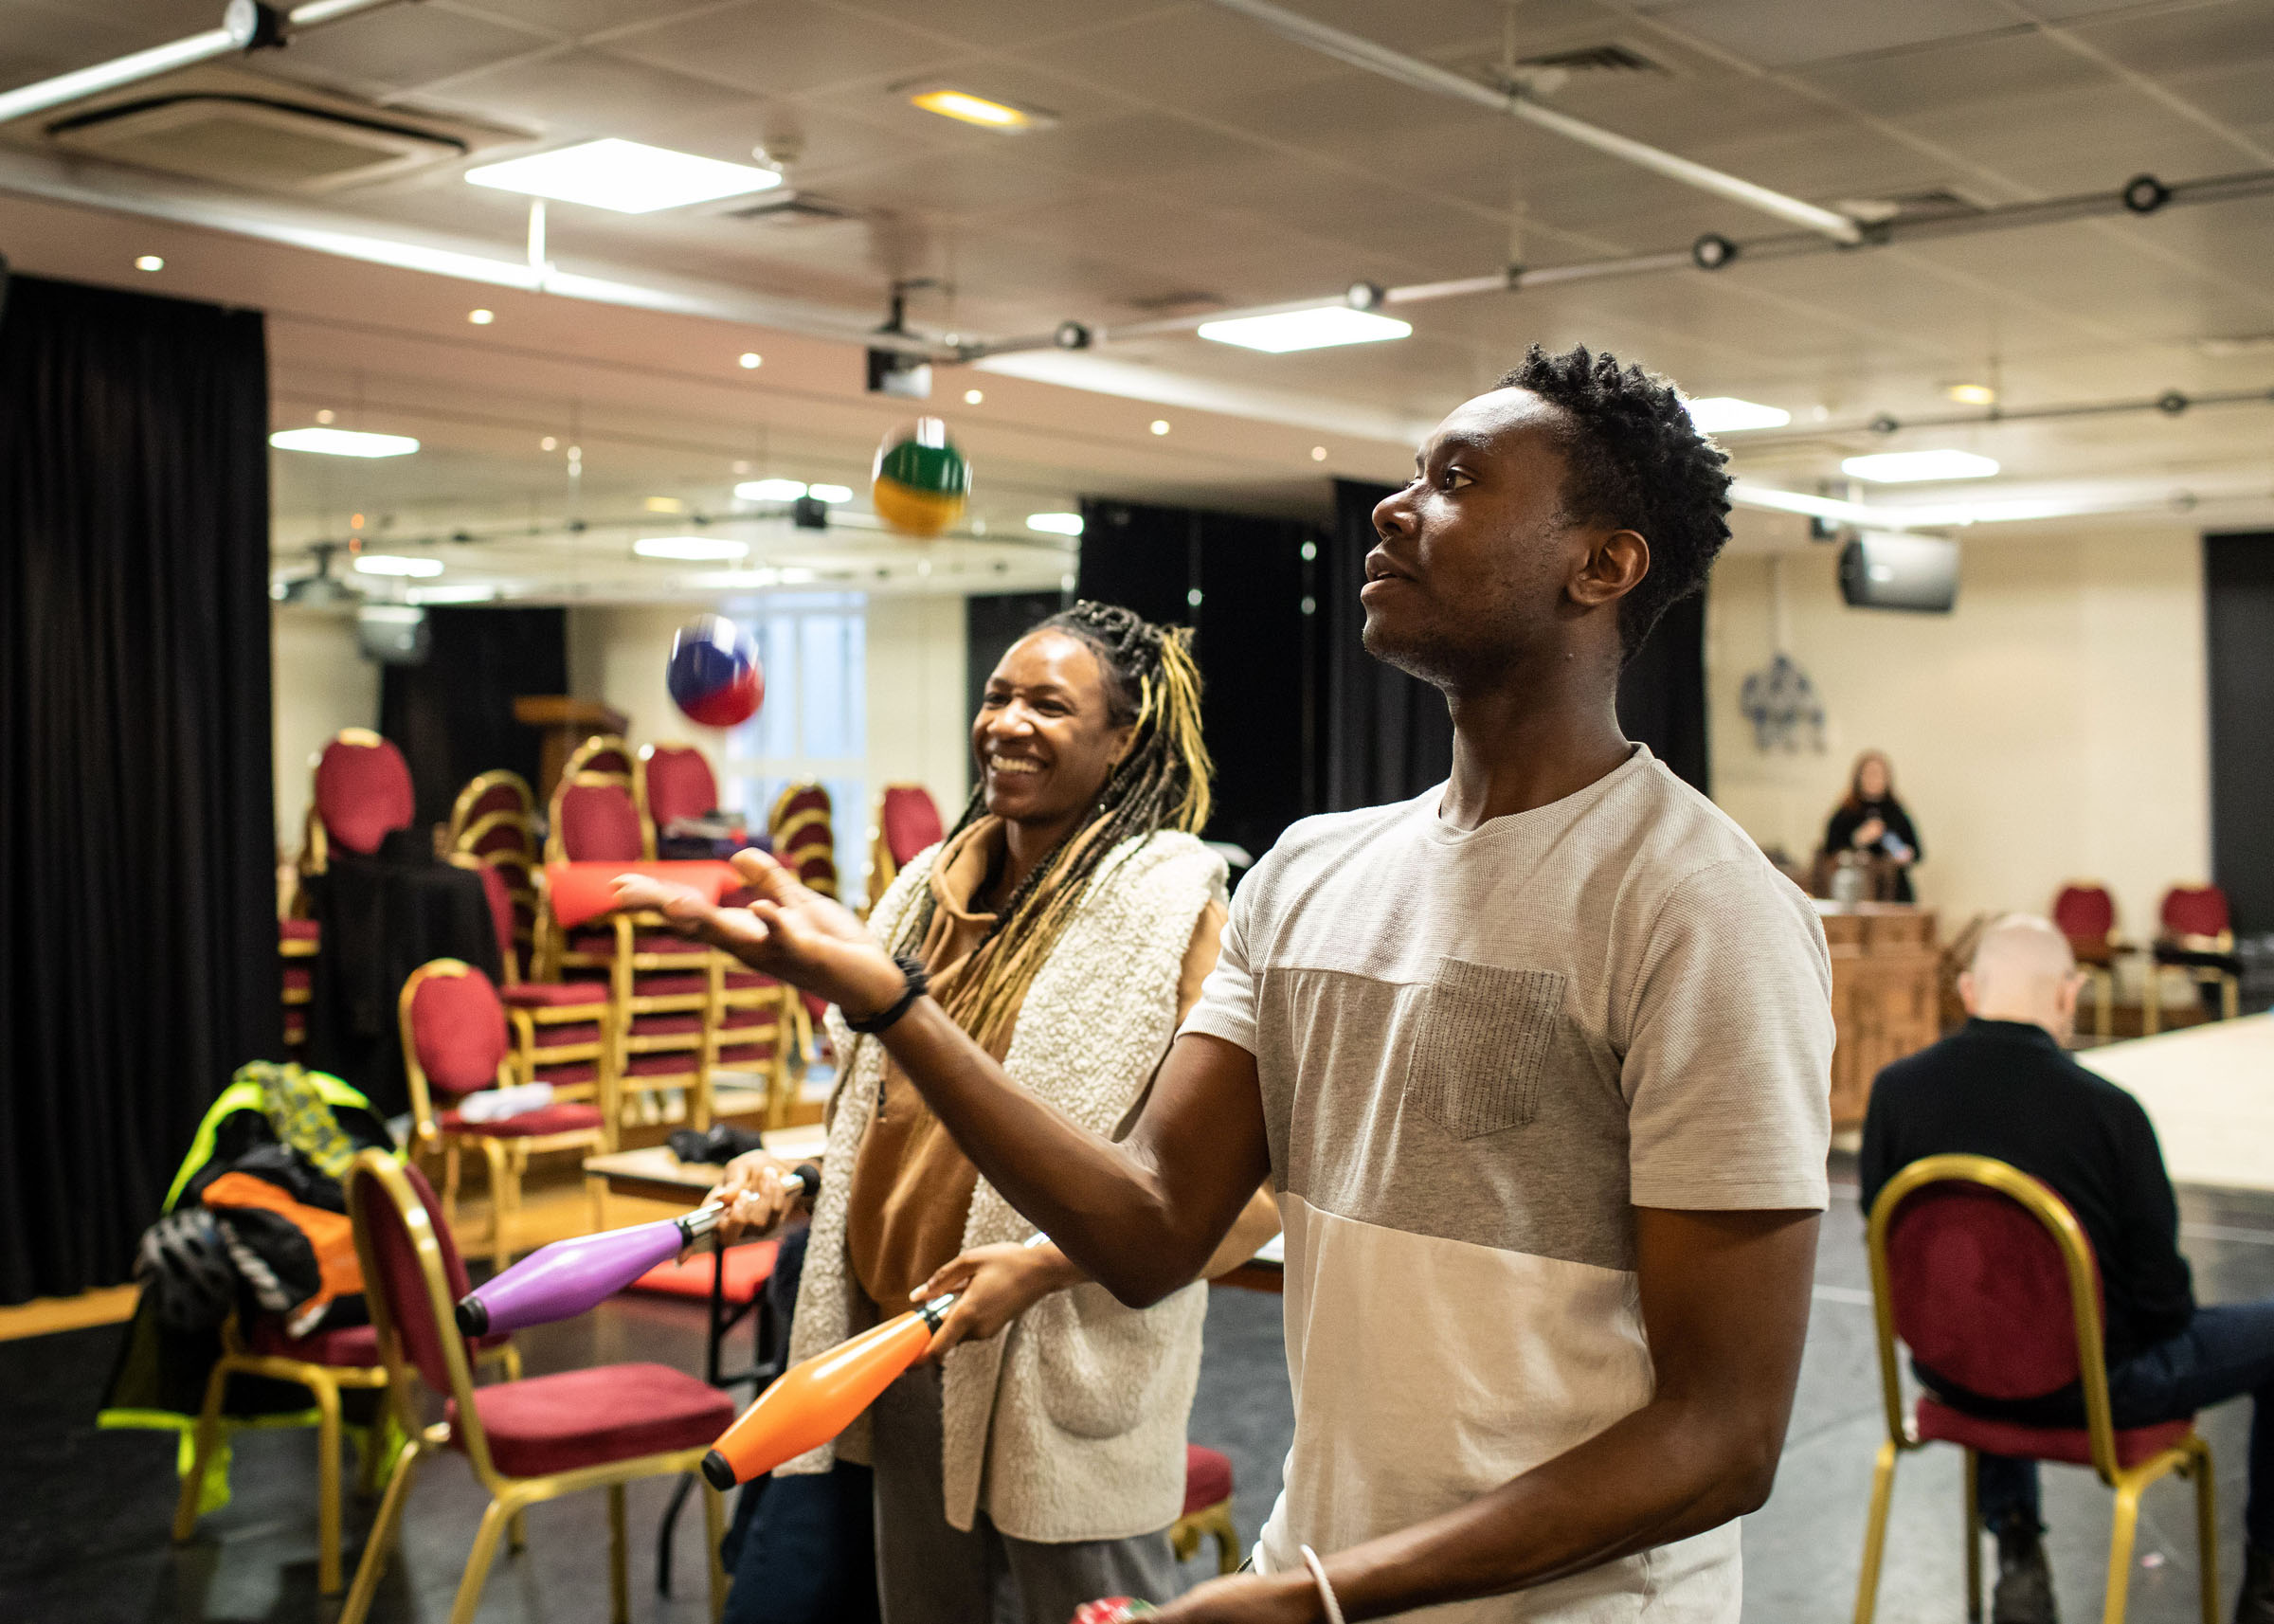 Kimisha Lewis and Reice Weathers juggling in rehearsal for 'The Upstart Crow'